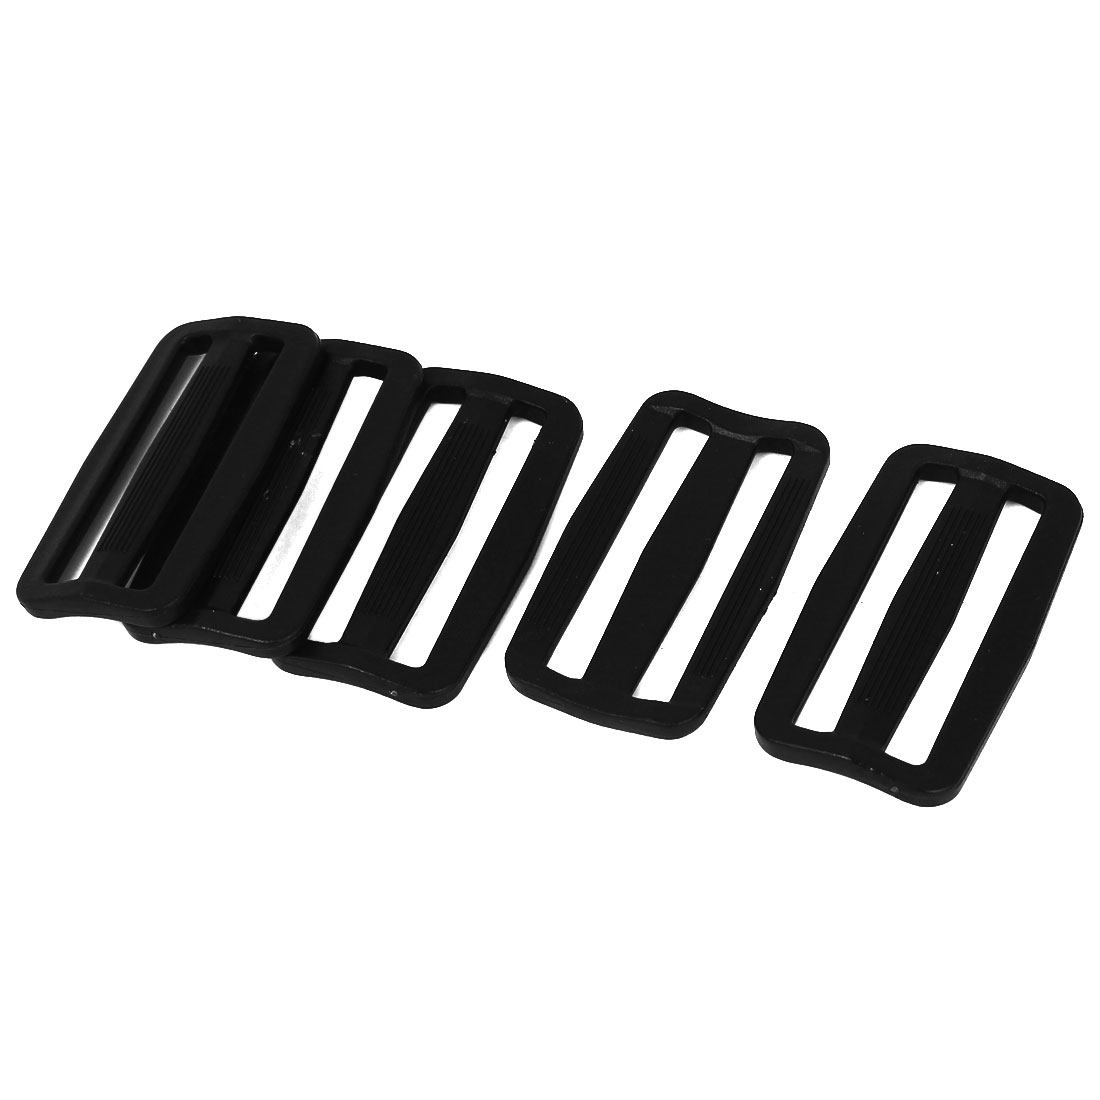 5 Pcs Black Hard Plastic Slide Rectangle Buckle Luggage Bag Replacement 5.0CM